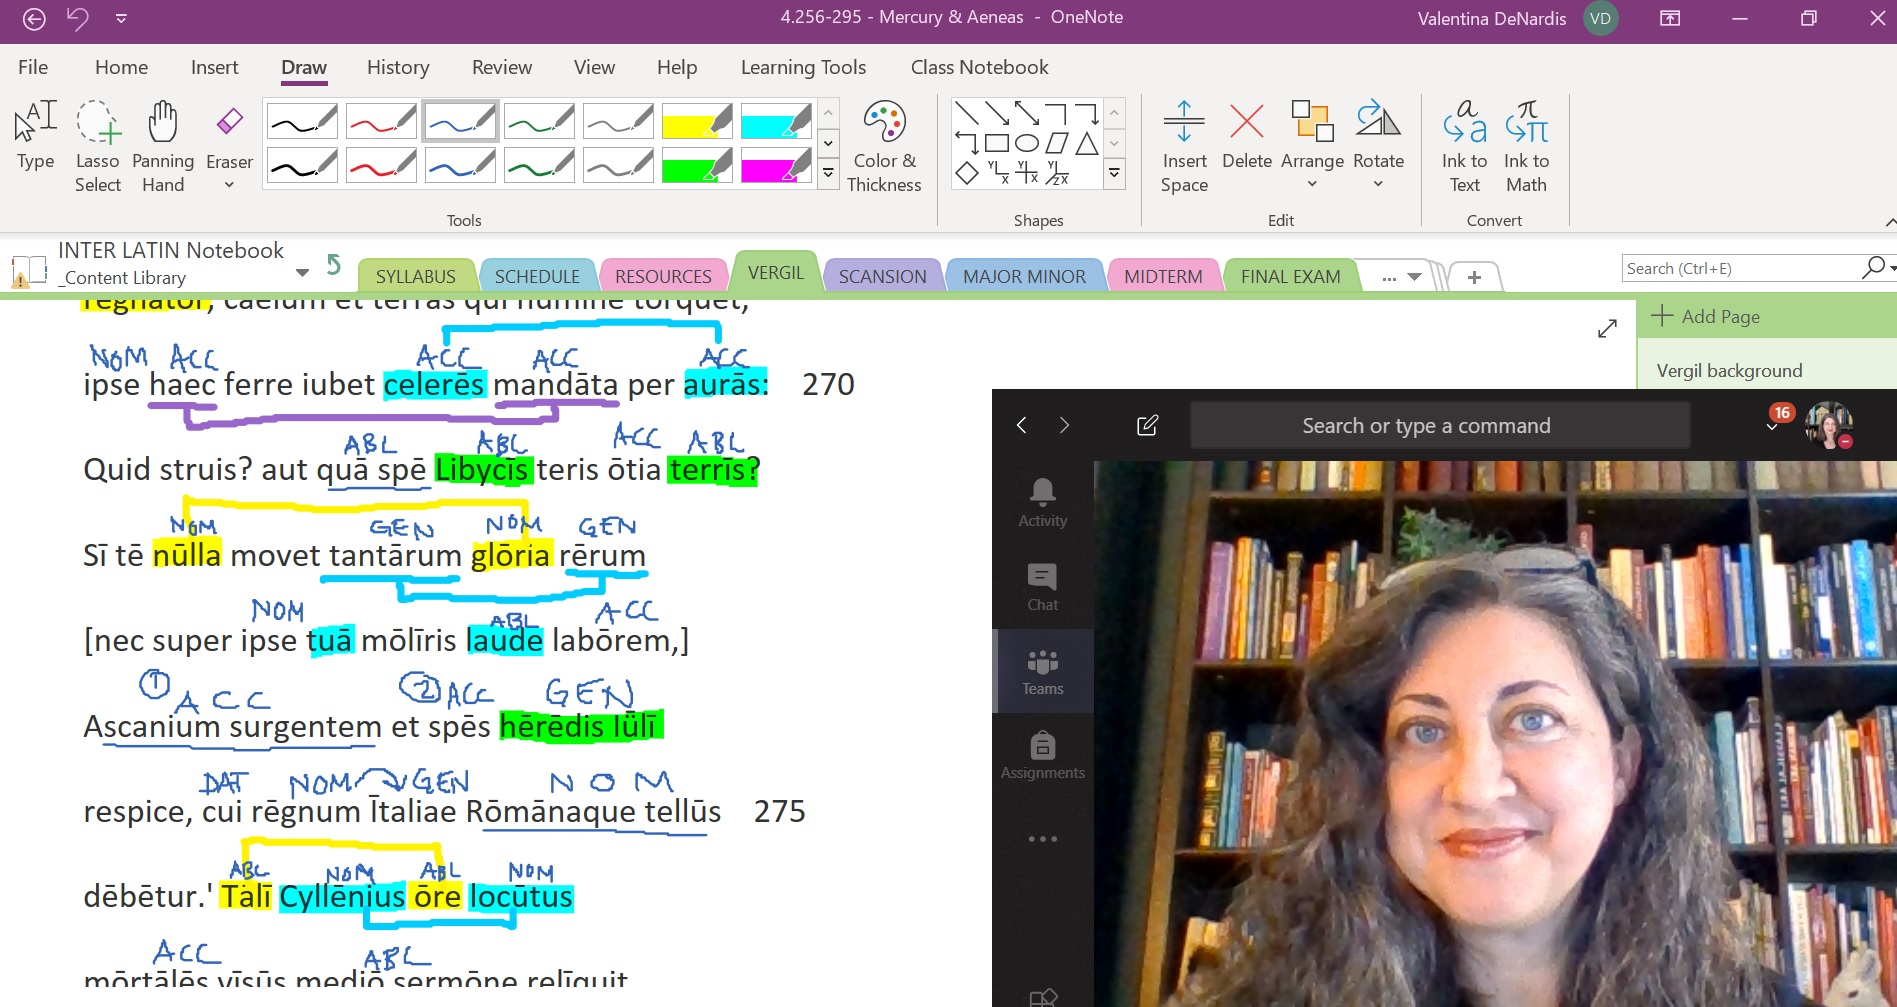 Photo of Dr. DenNardis's face on a video screen next to a heavily annotated piece of Latin text on her OneNote screen that she shares with her students